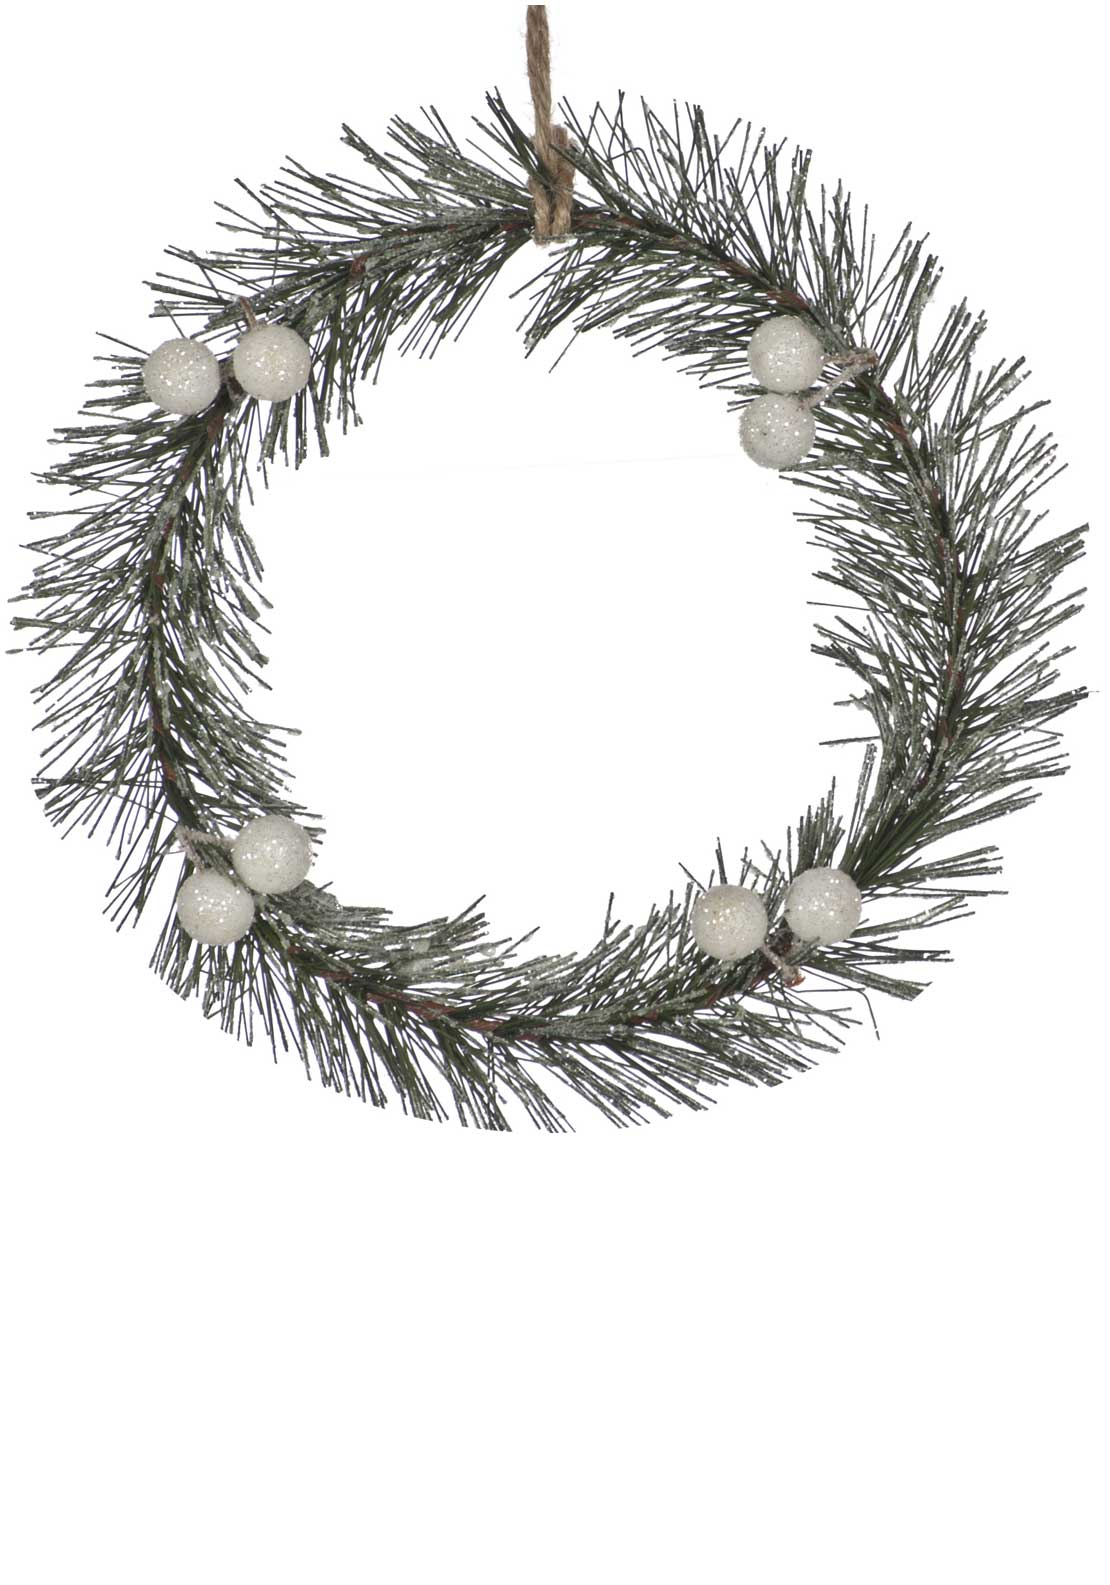 Festive Frosted Wreath Tree Decoration, Green